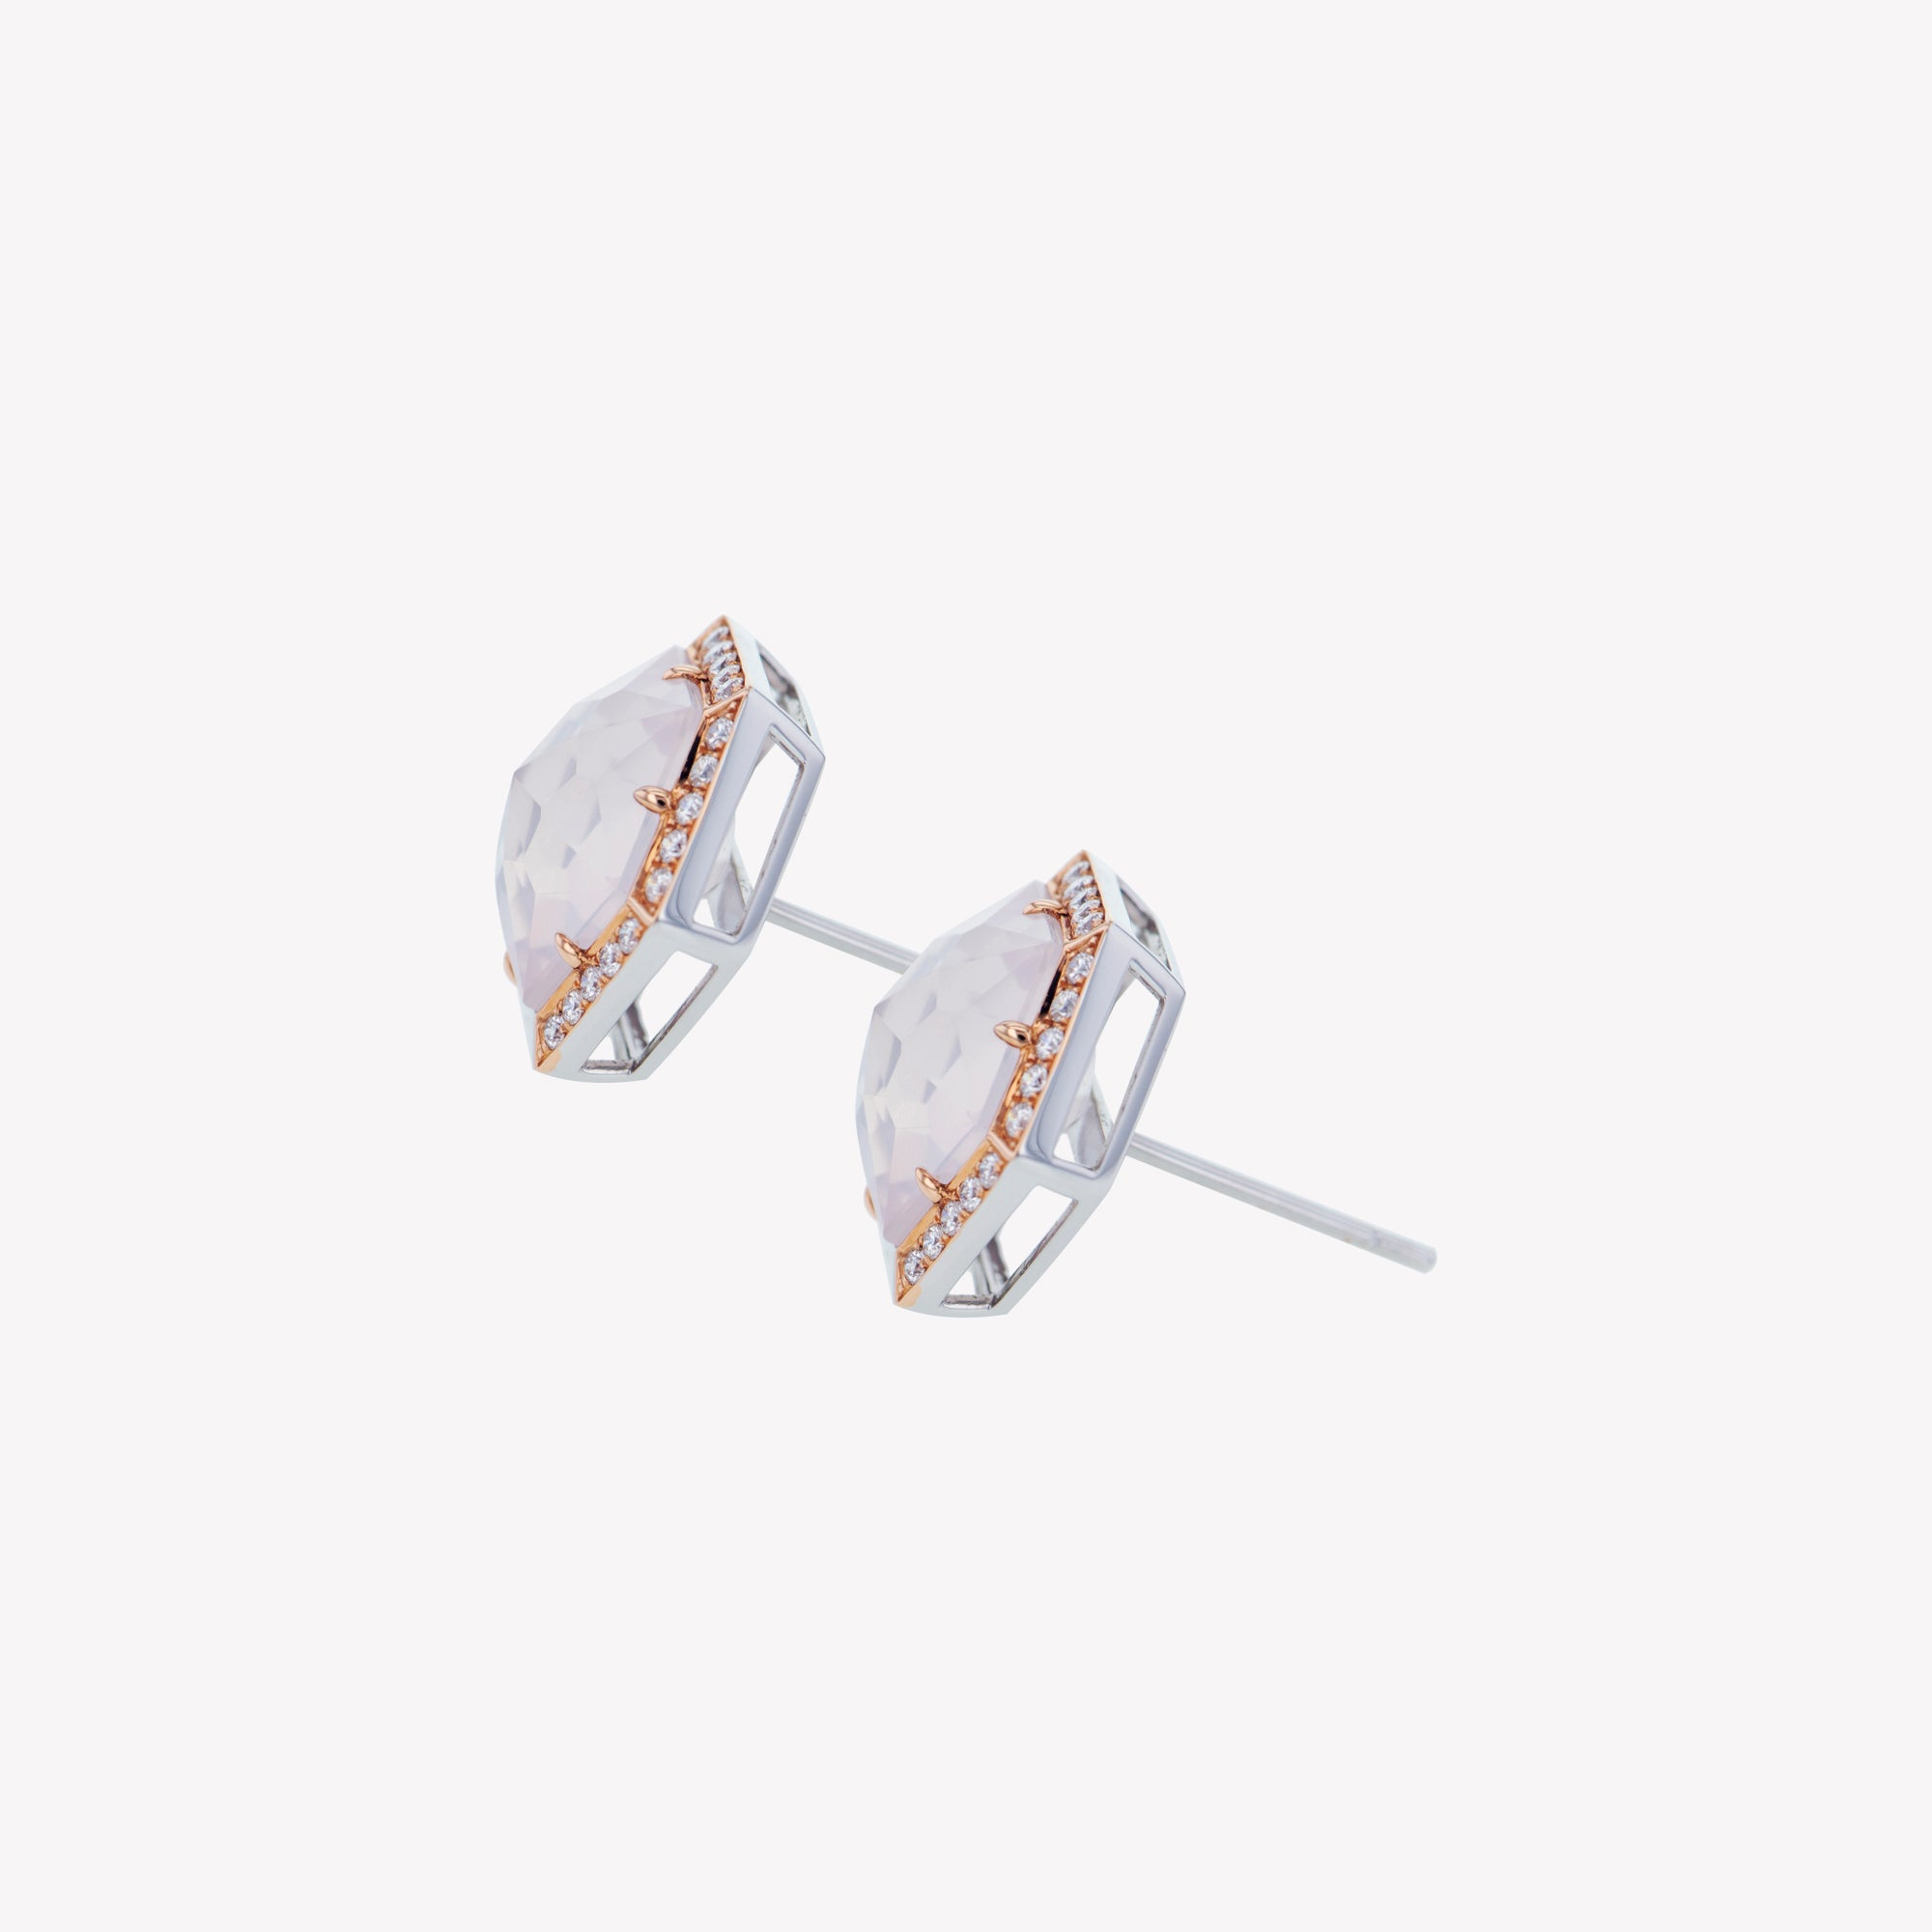 18K W/R/G Rose Quartz Diamond Earrings